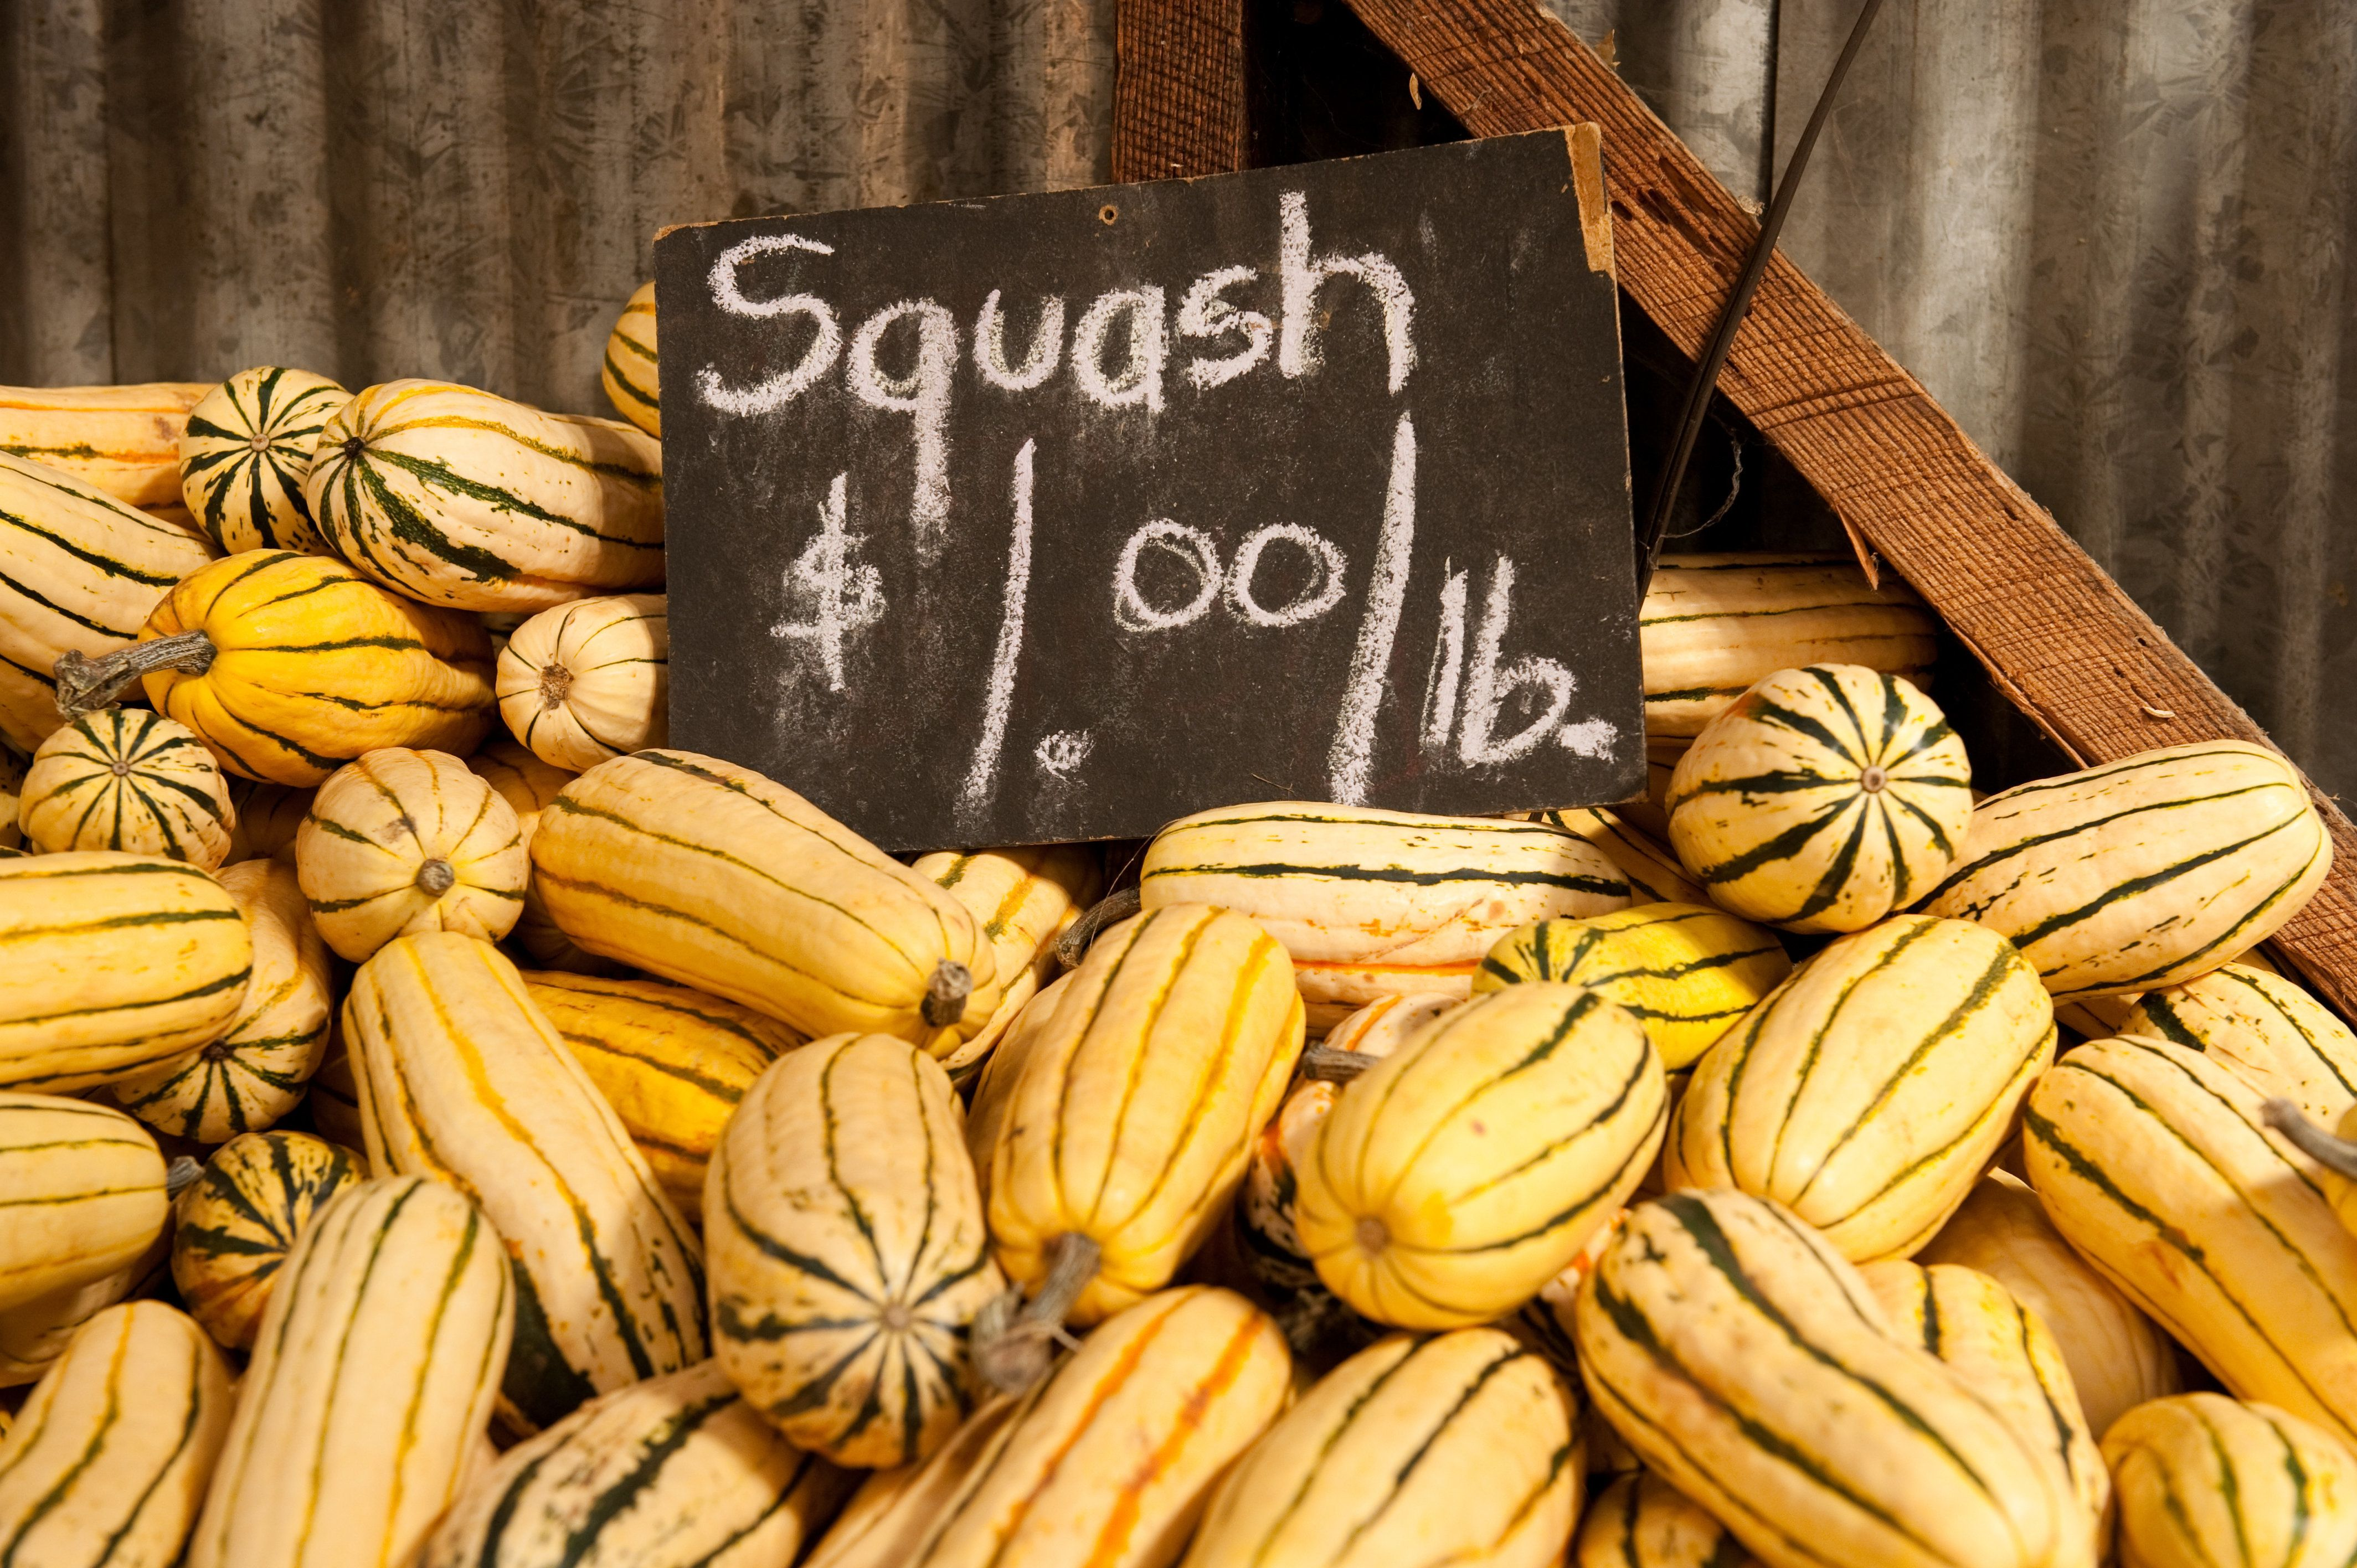 Squash for sale at a farmers market